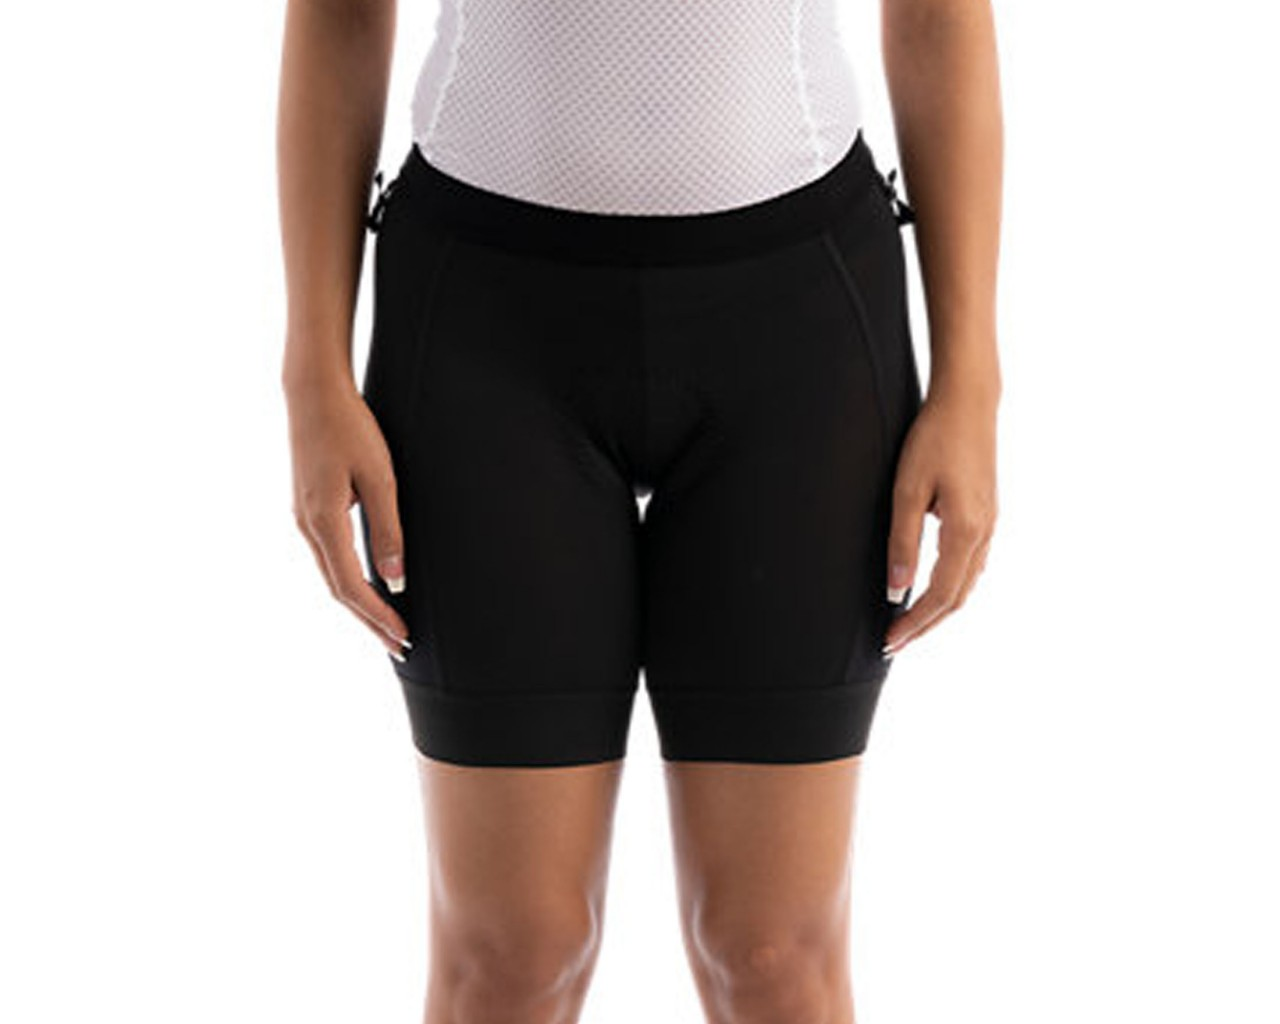 Specialized Ultralight Liner Women Shorts with Swat | black